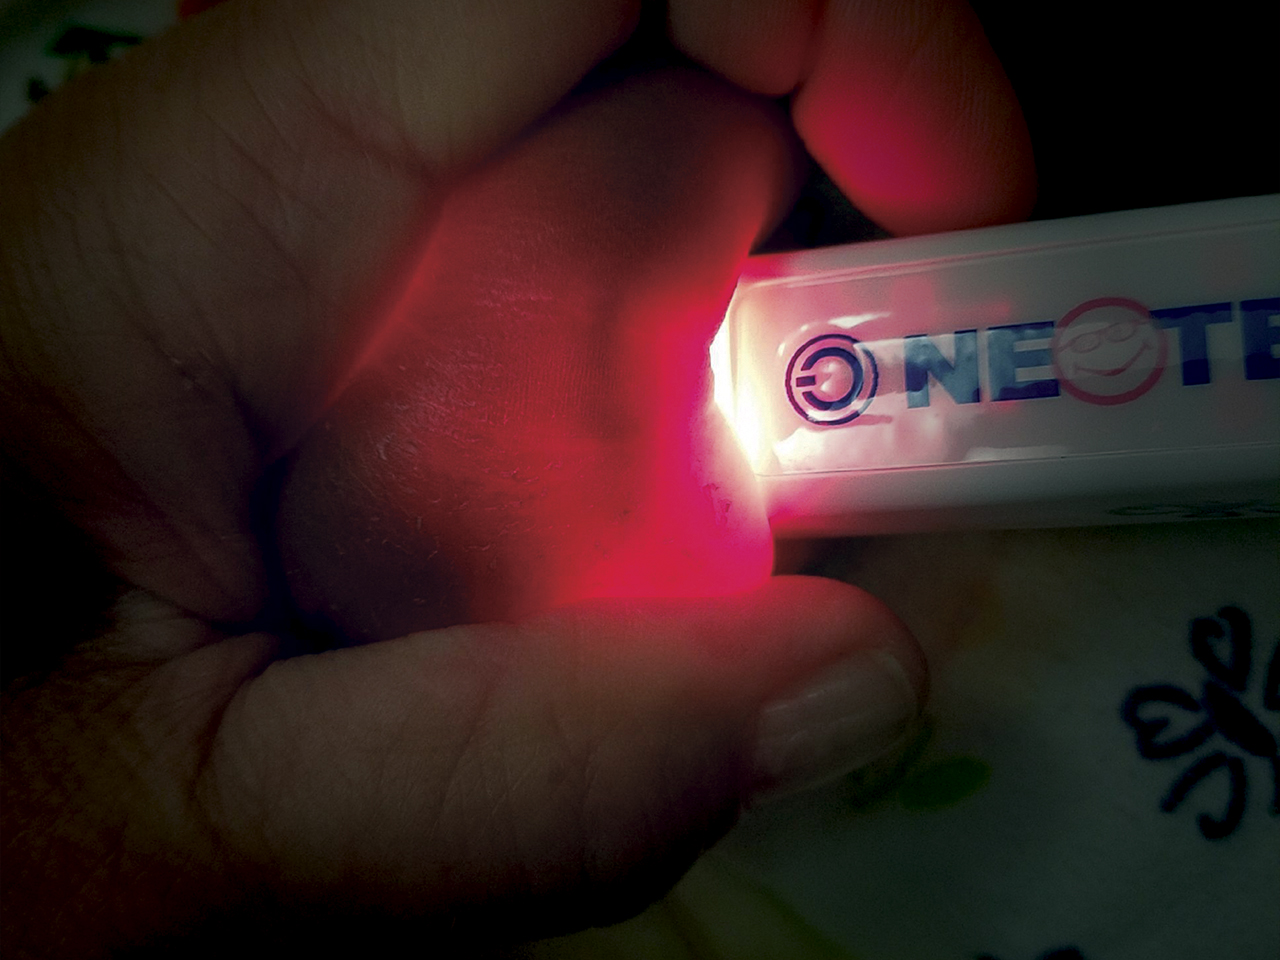 NeoGlo Transilluminator in-use on hand